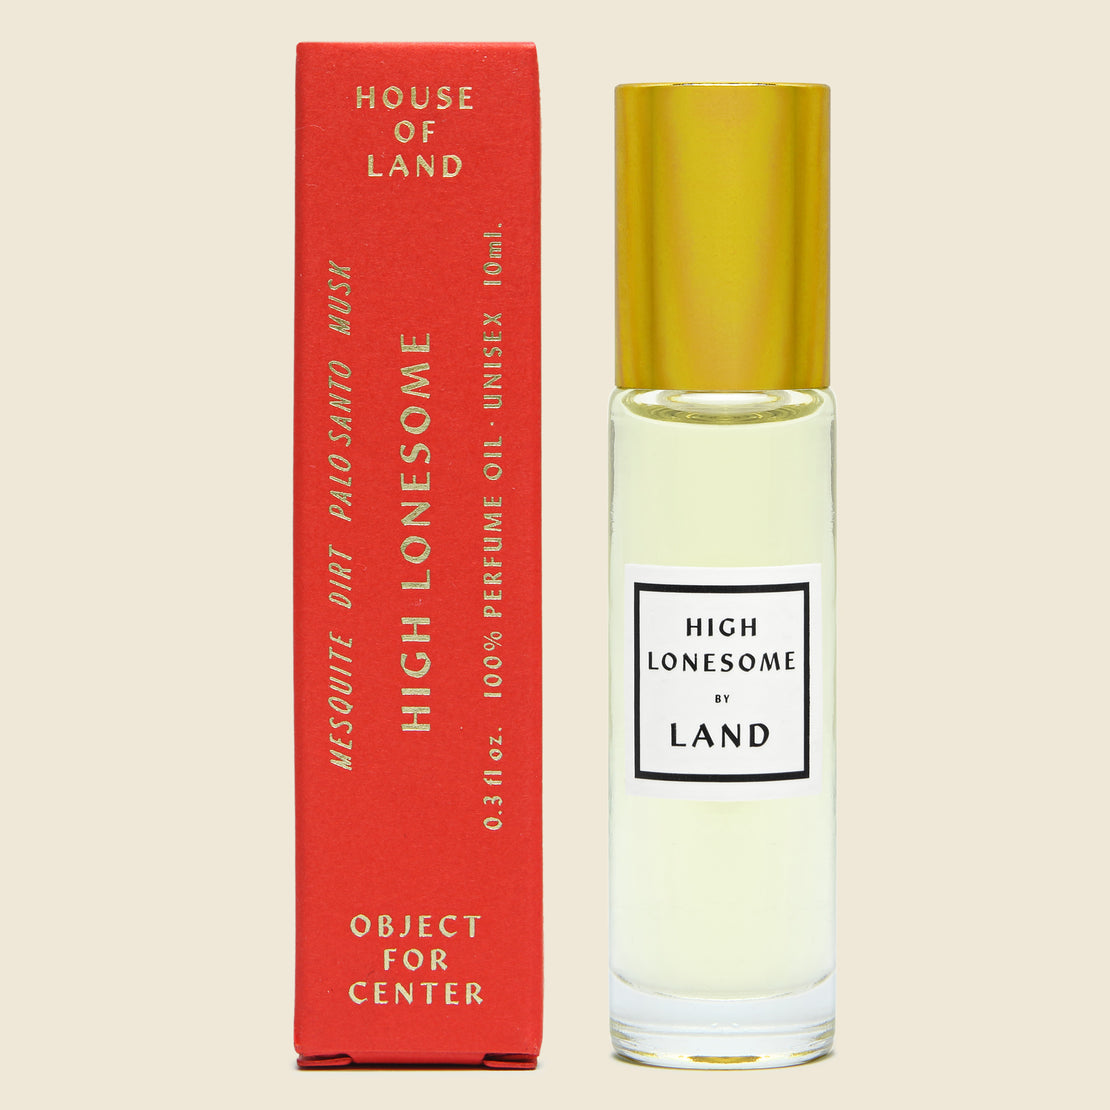 House of LAND Perfume Oil - High Lonesome